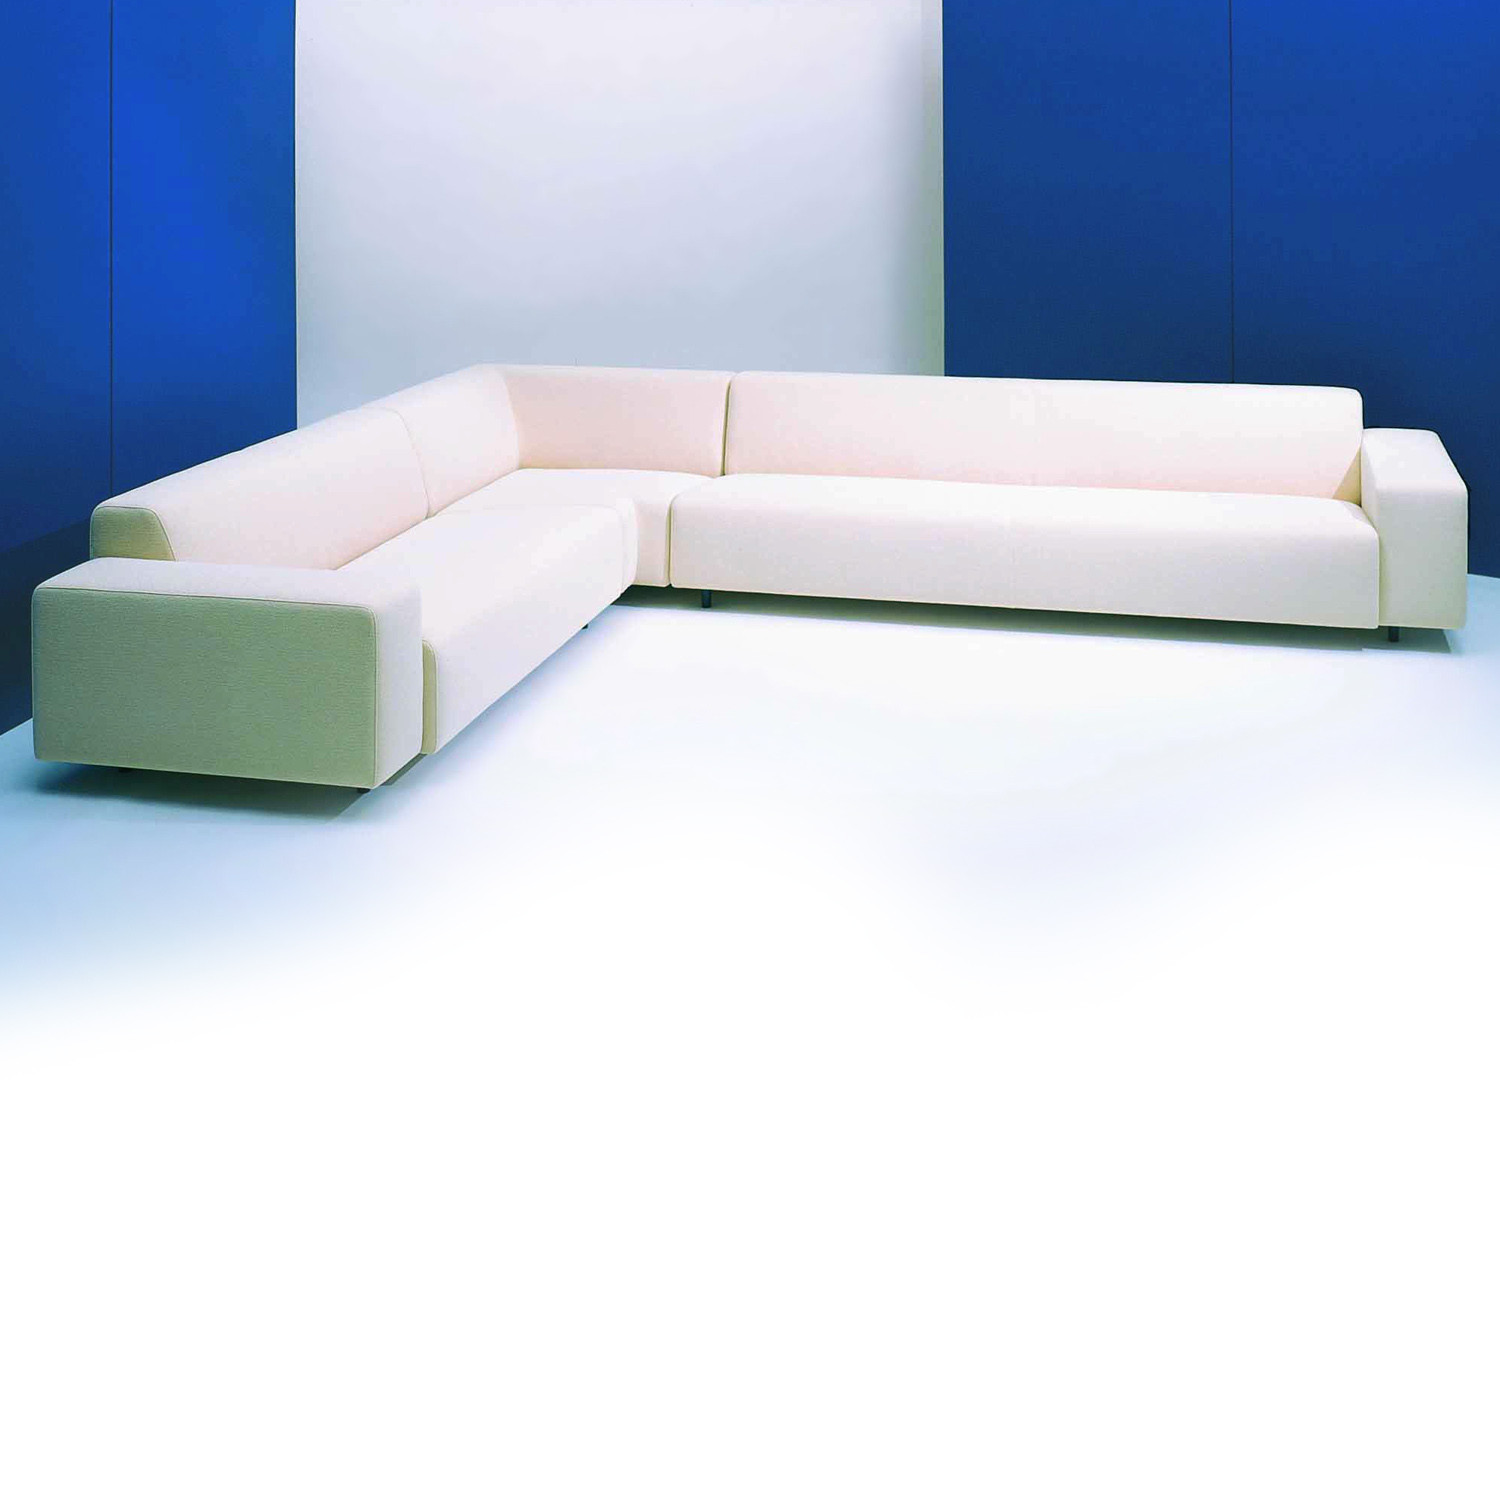 HM17 Upholstered Modular Seating